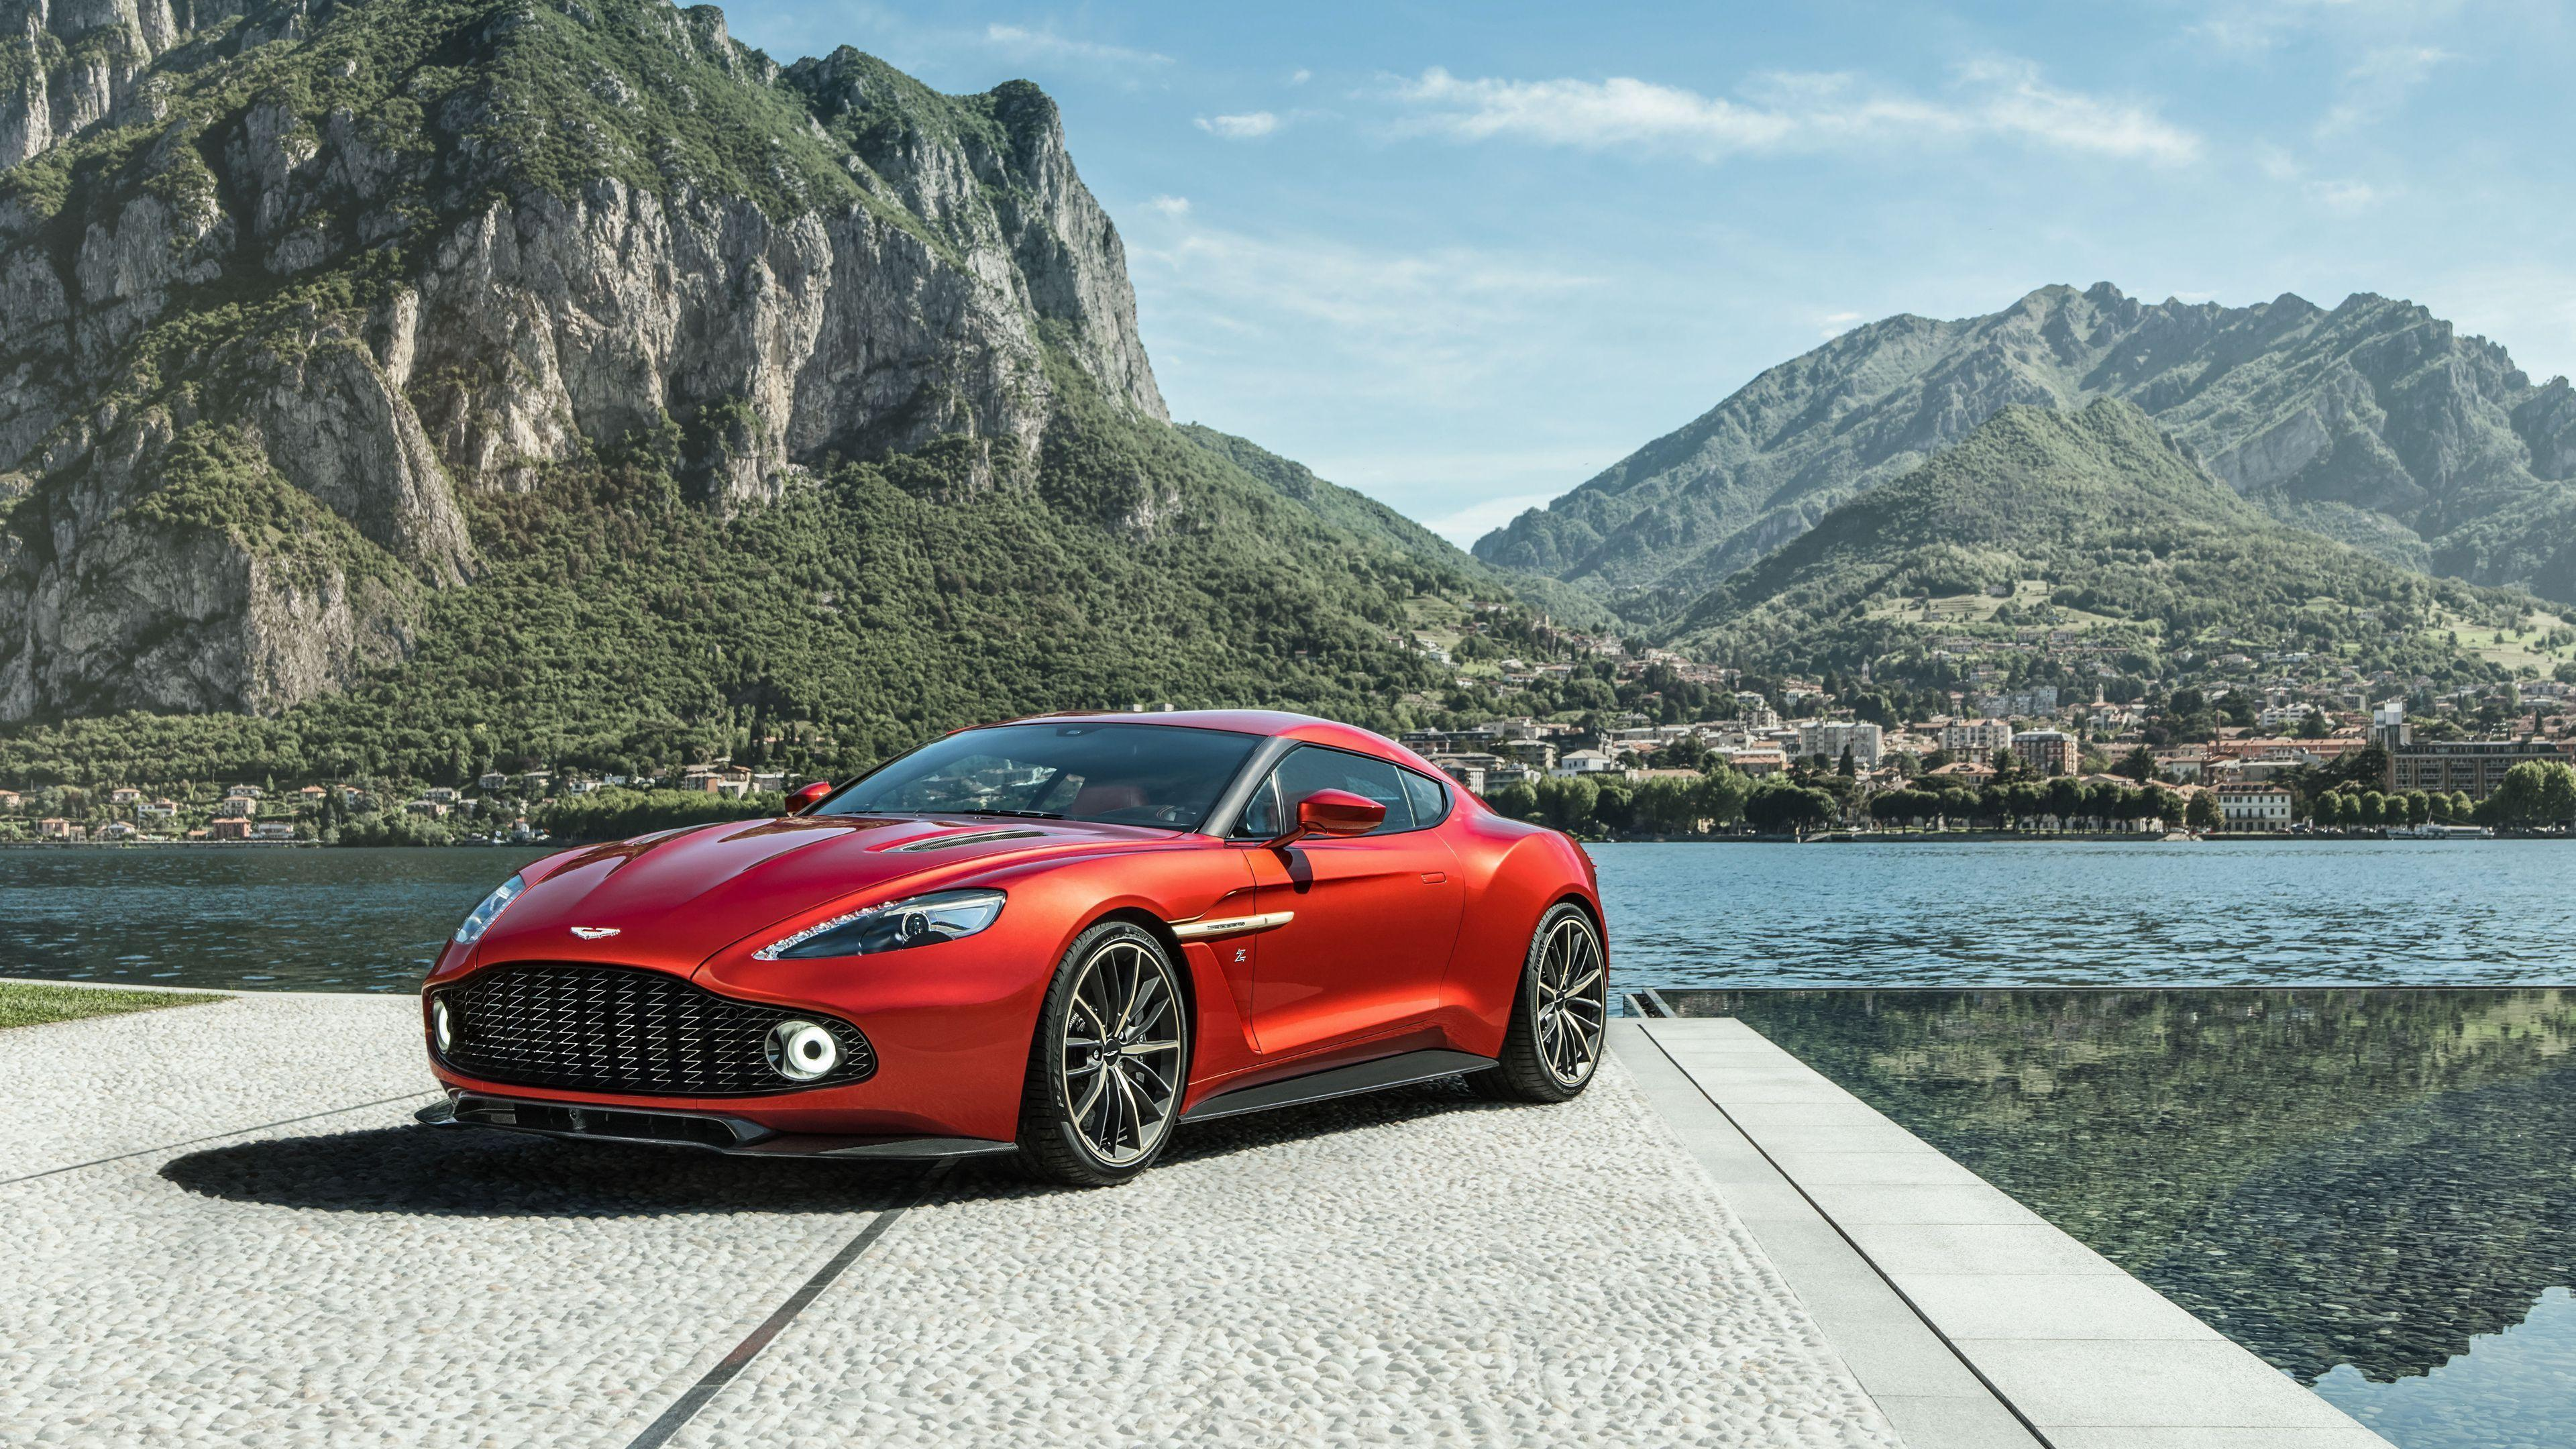 2017 Aston Martin Vanquish Zagato 5 Wallpaper | HD Car Wallpapers